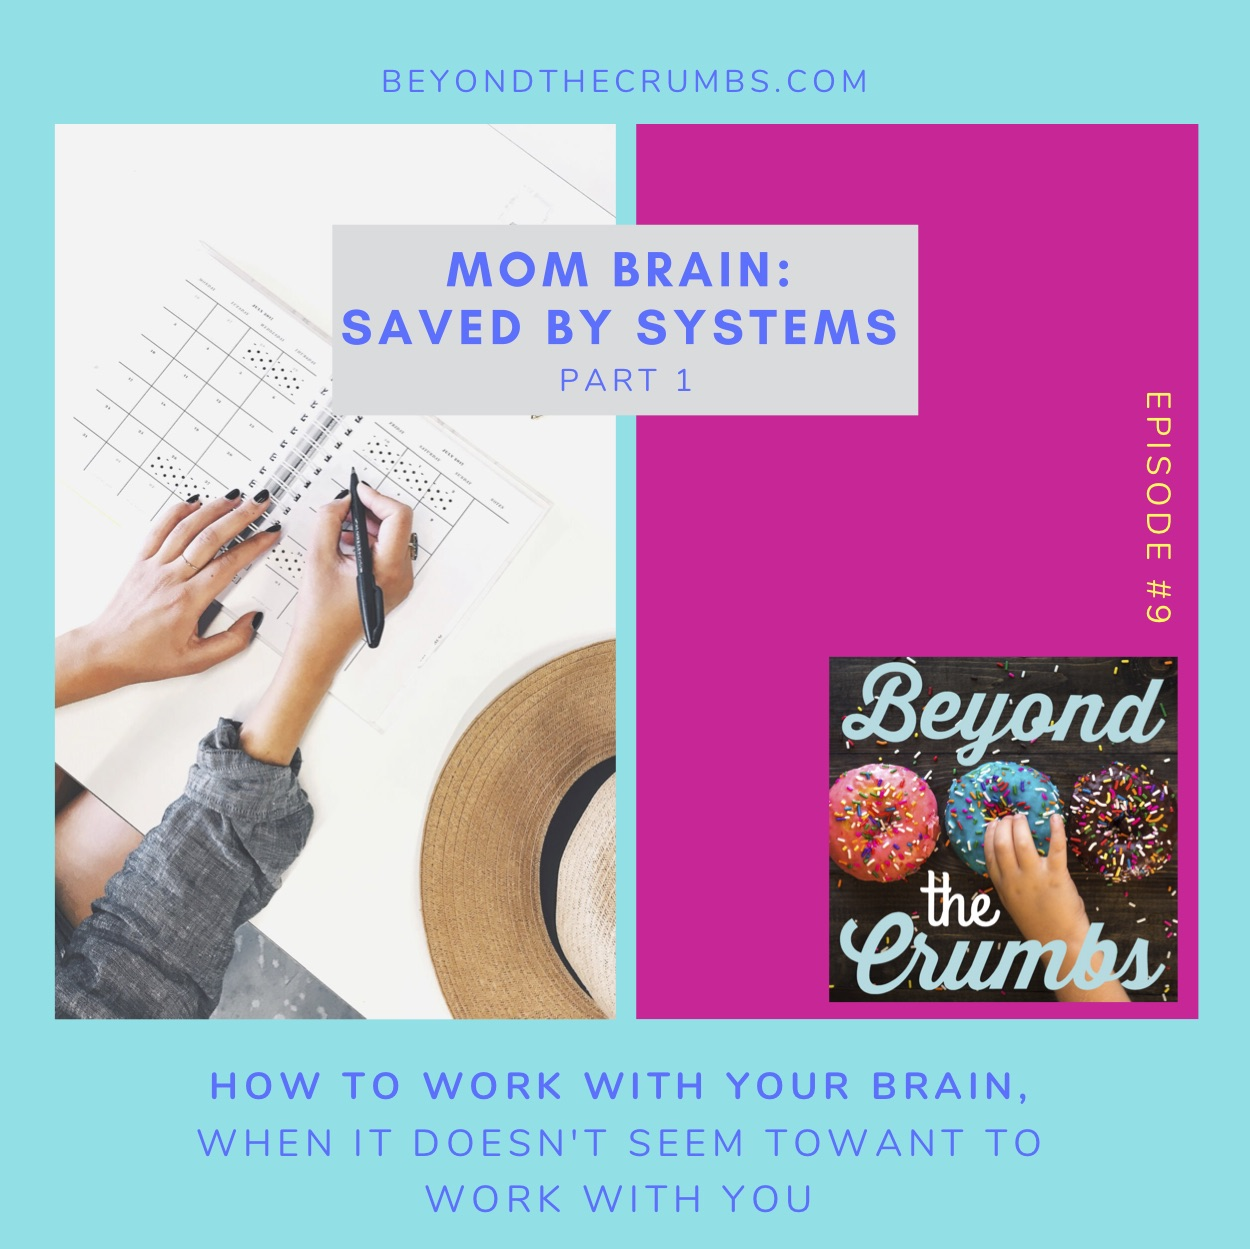 Mom Brain: Saved by systems, part 1